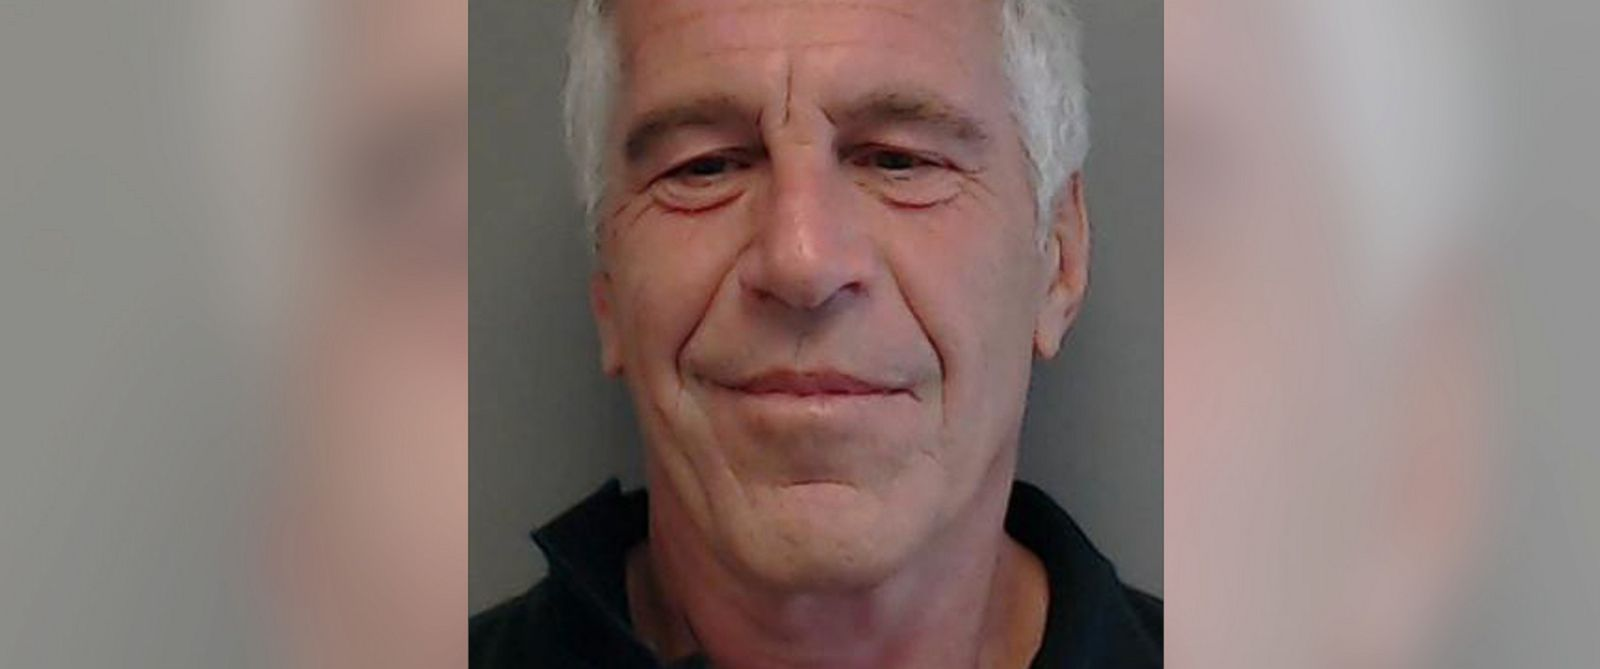 PHOTO: The mugshot of Jeffrey Epstein from the Florida Department of Law Enforcement where he is registered as a sex offender.